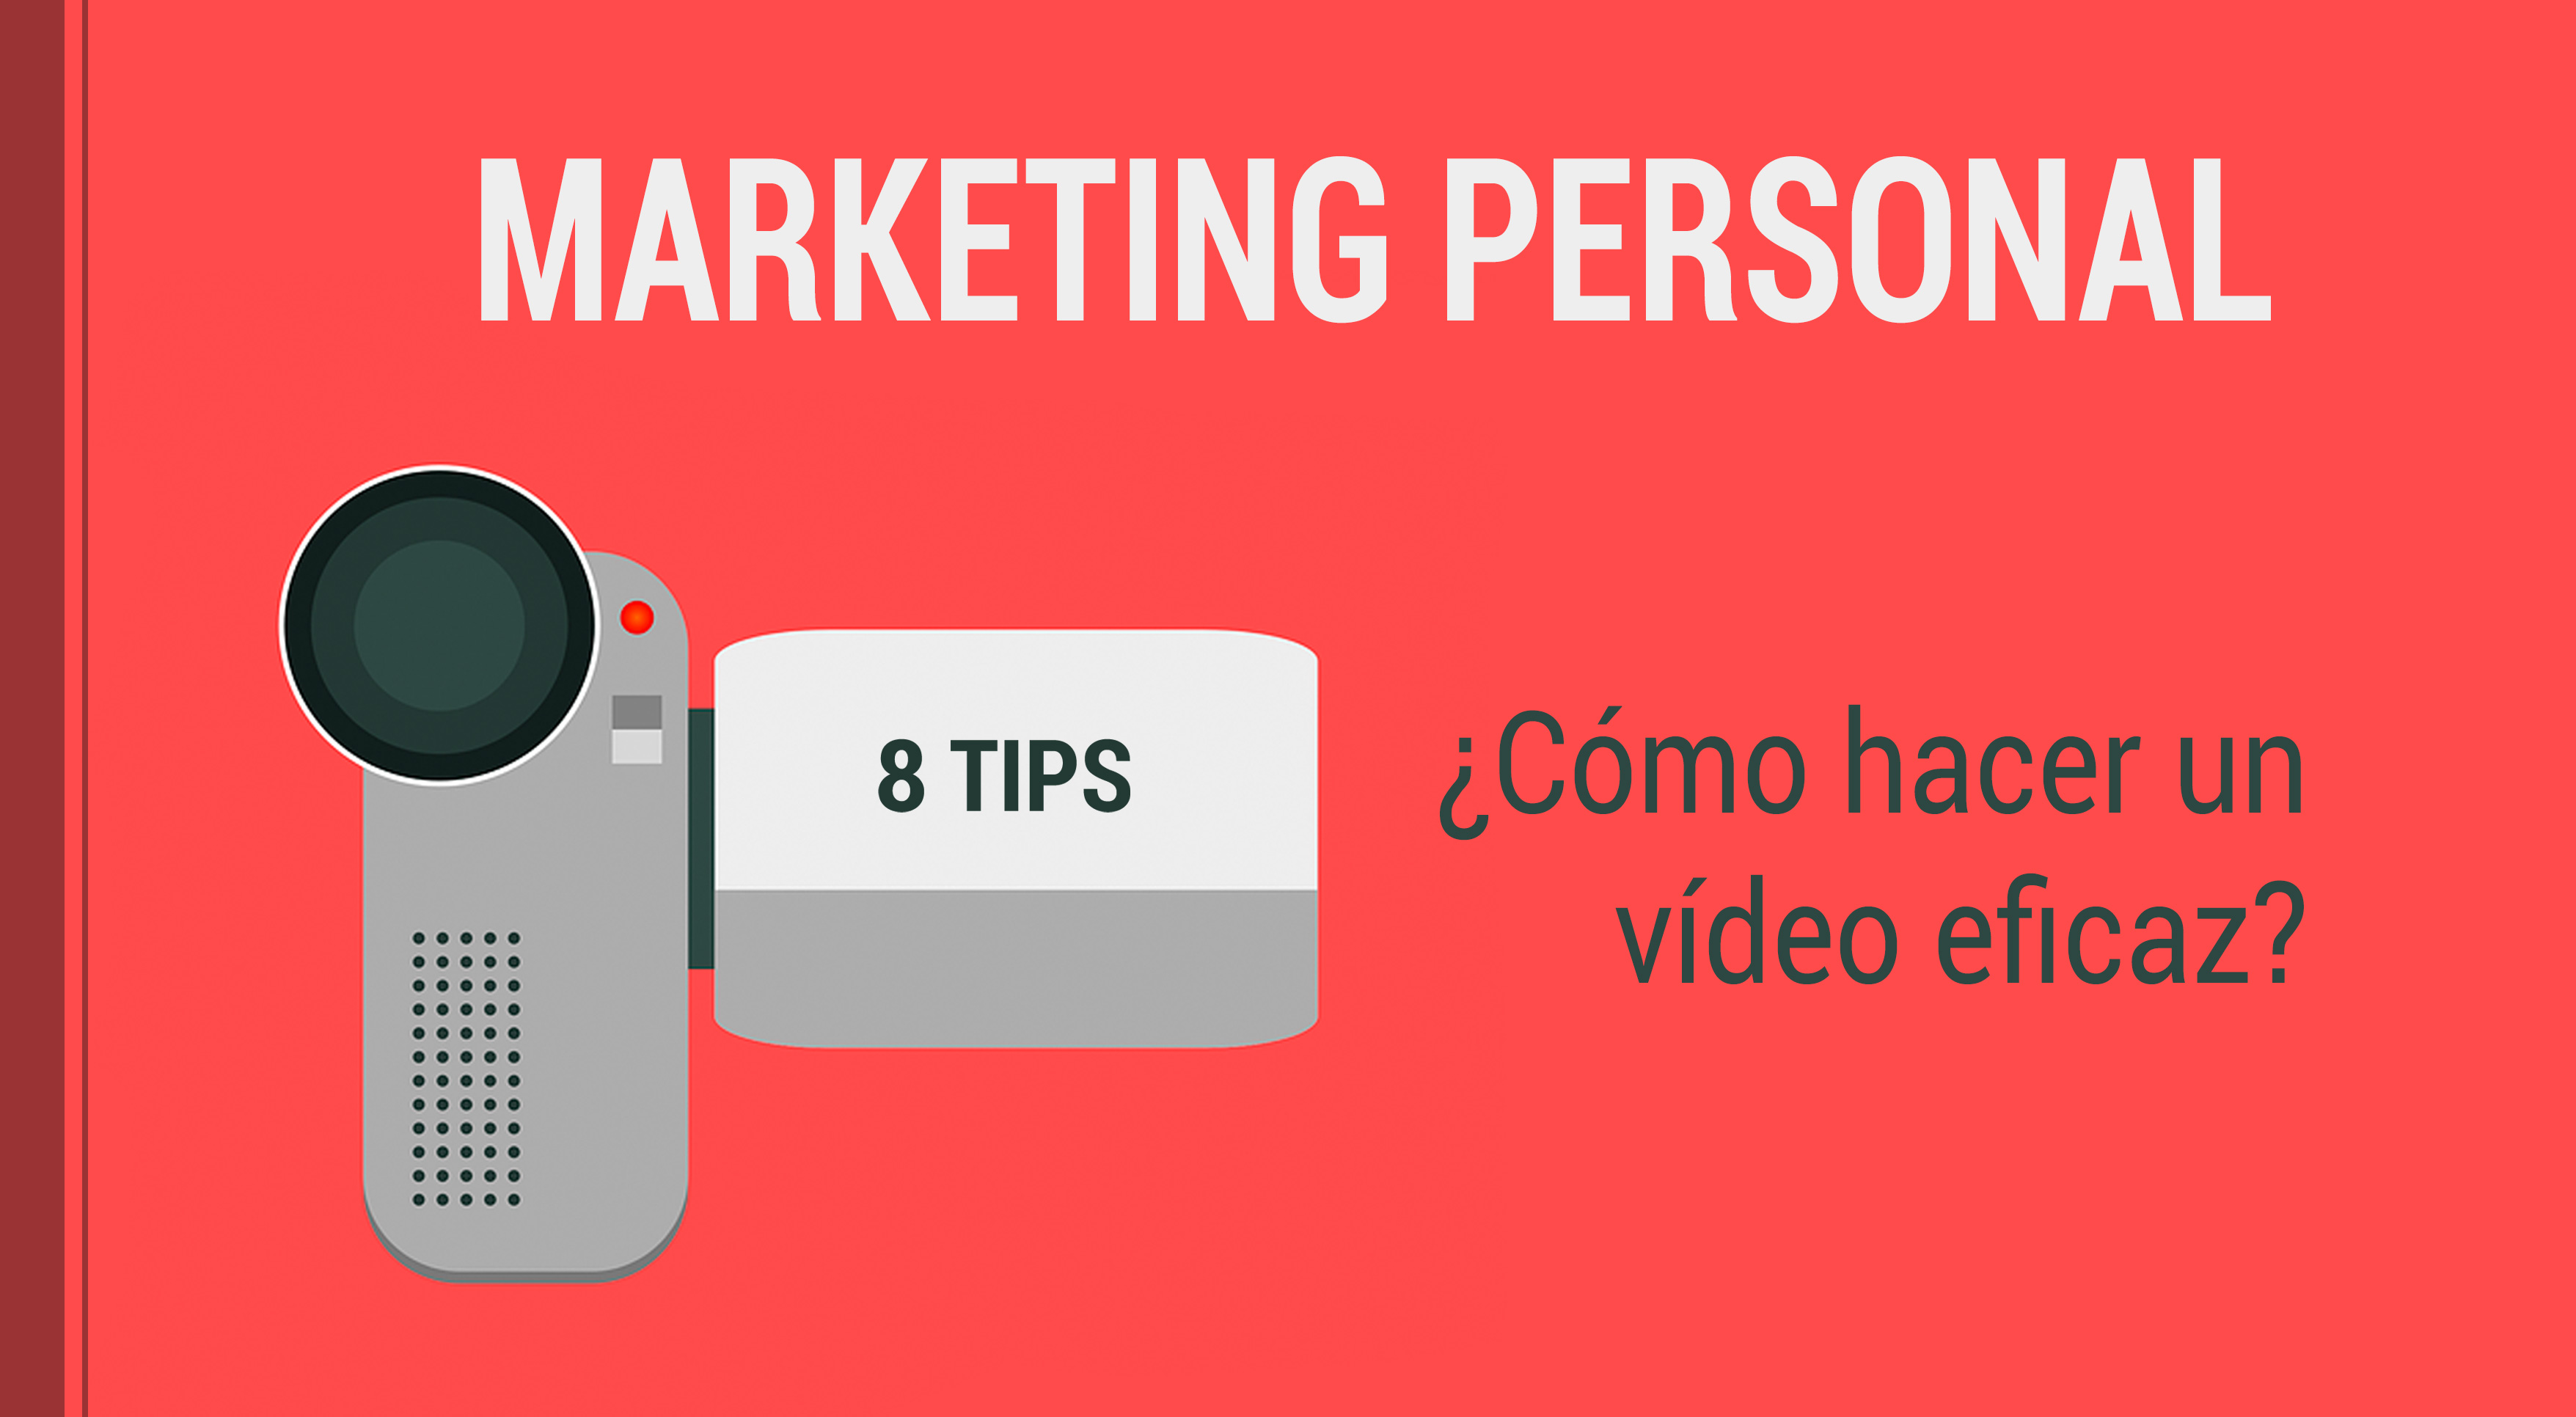 como hacer un video de marketing personal